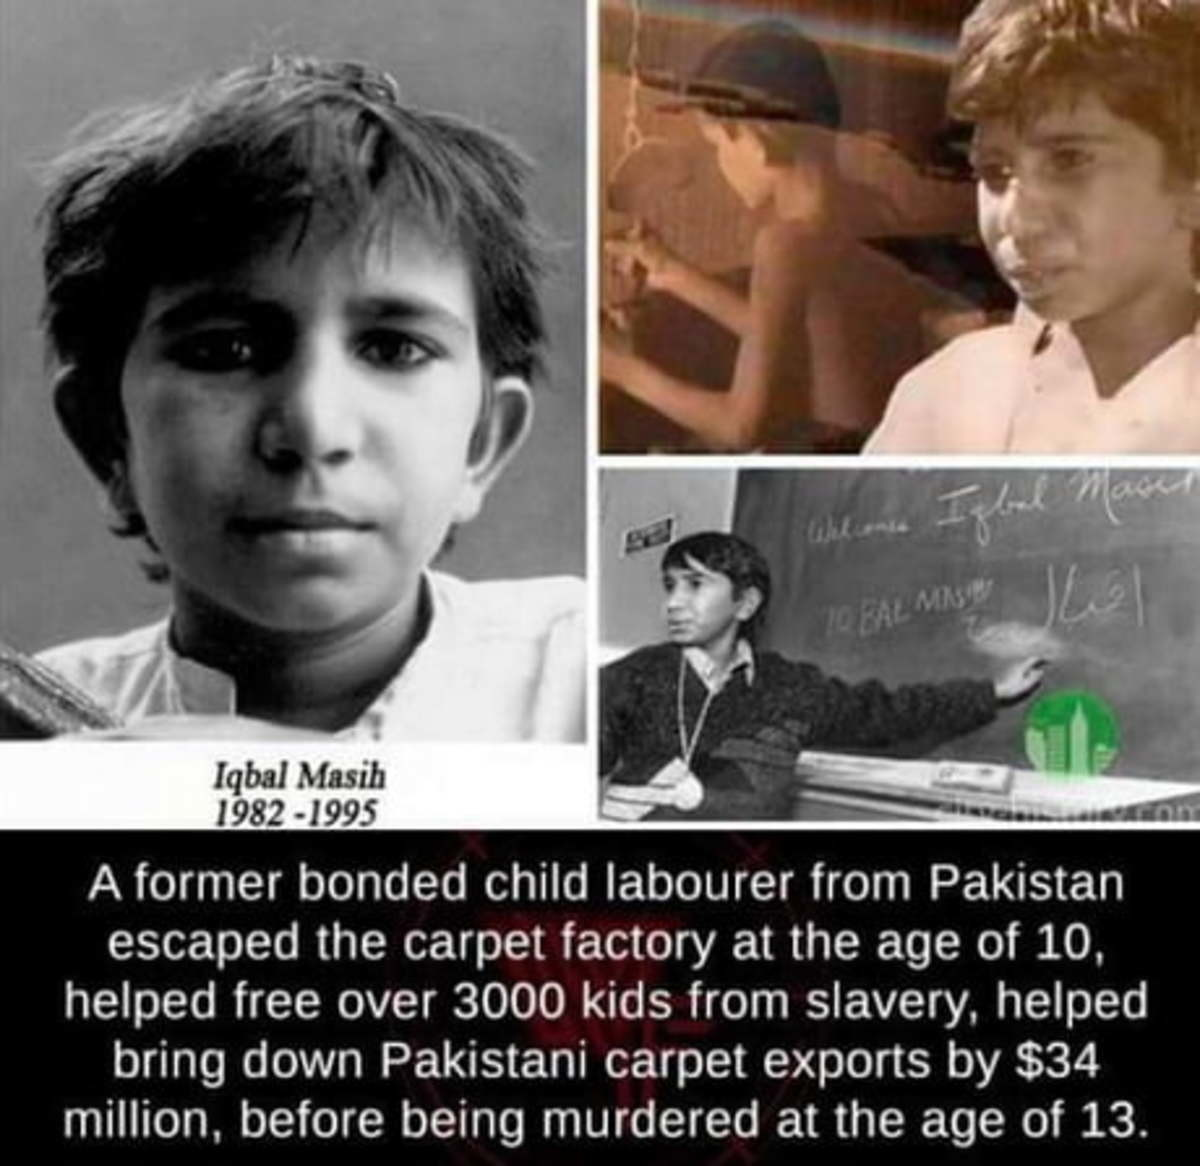 The Big Carpet assassinated this boy.. Props to this young man... What's YOUR excuse?